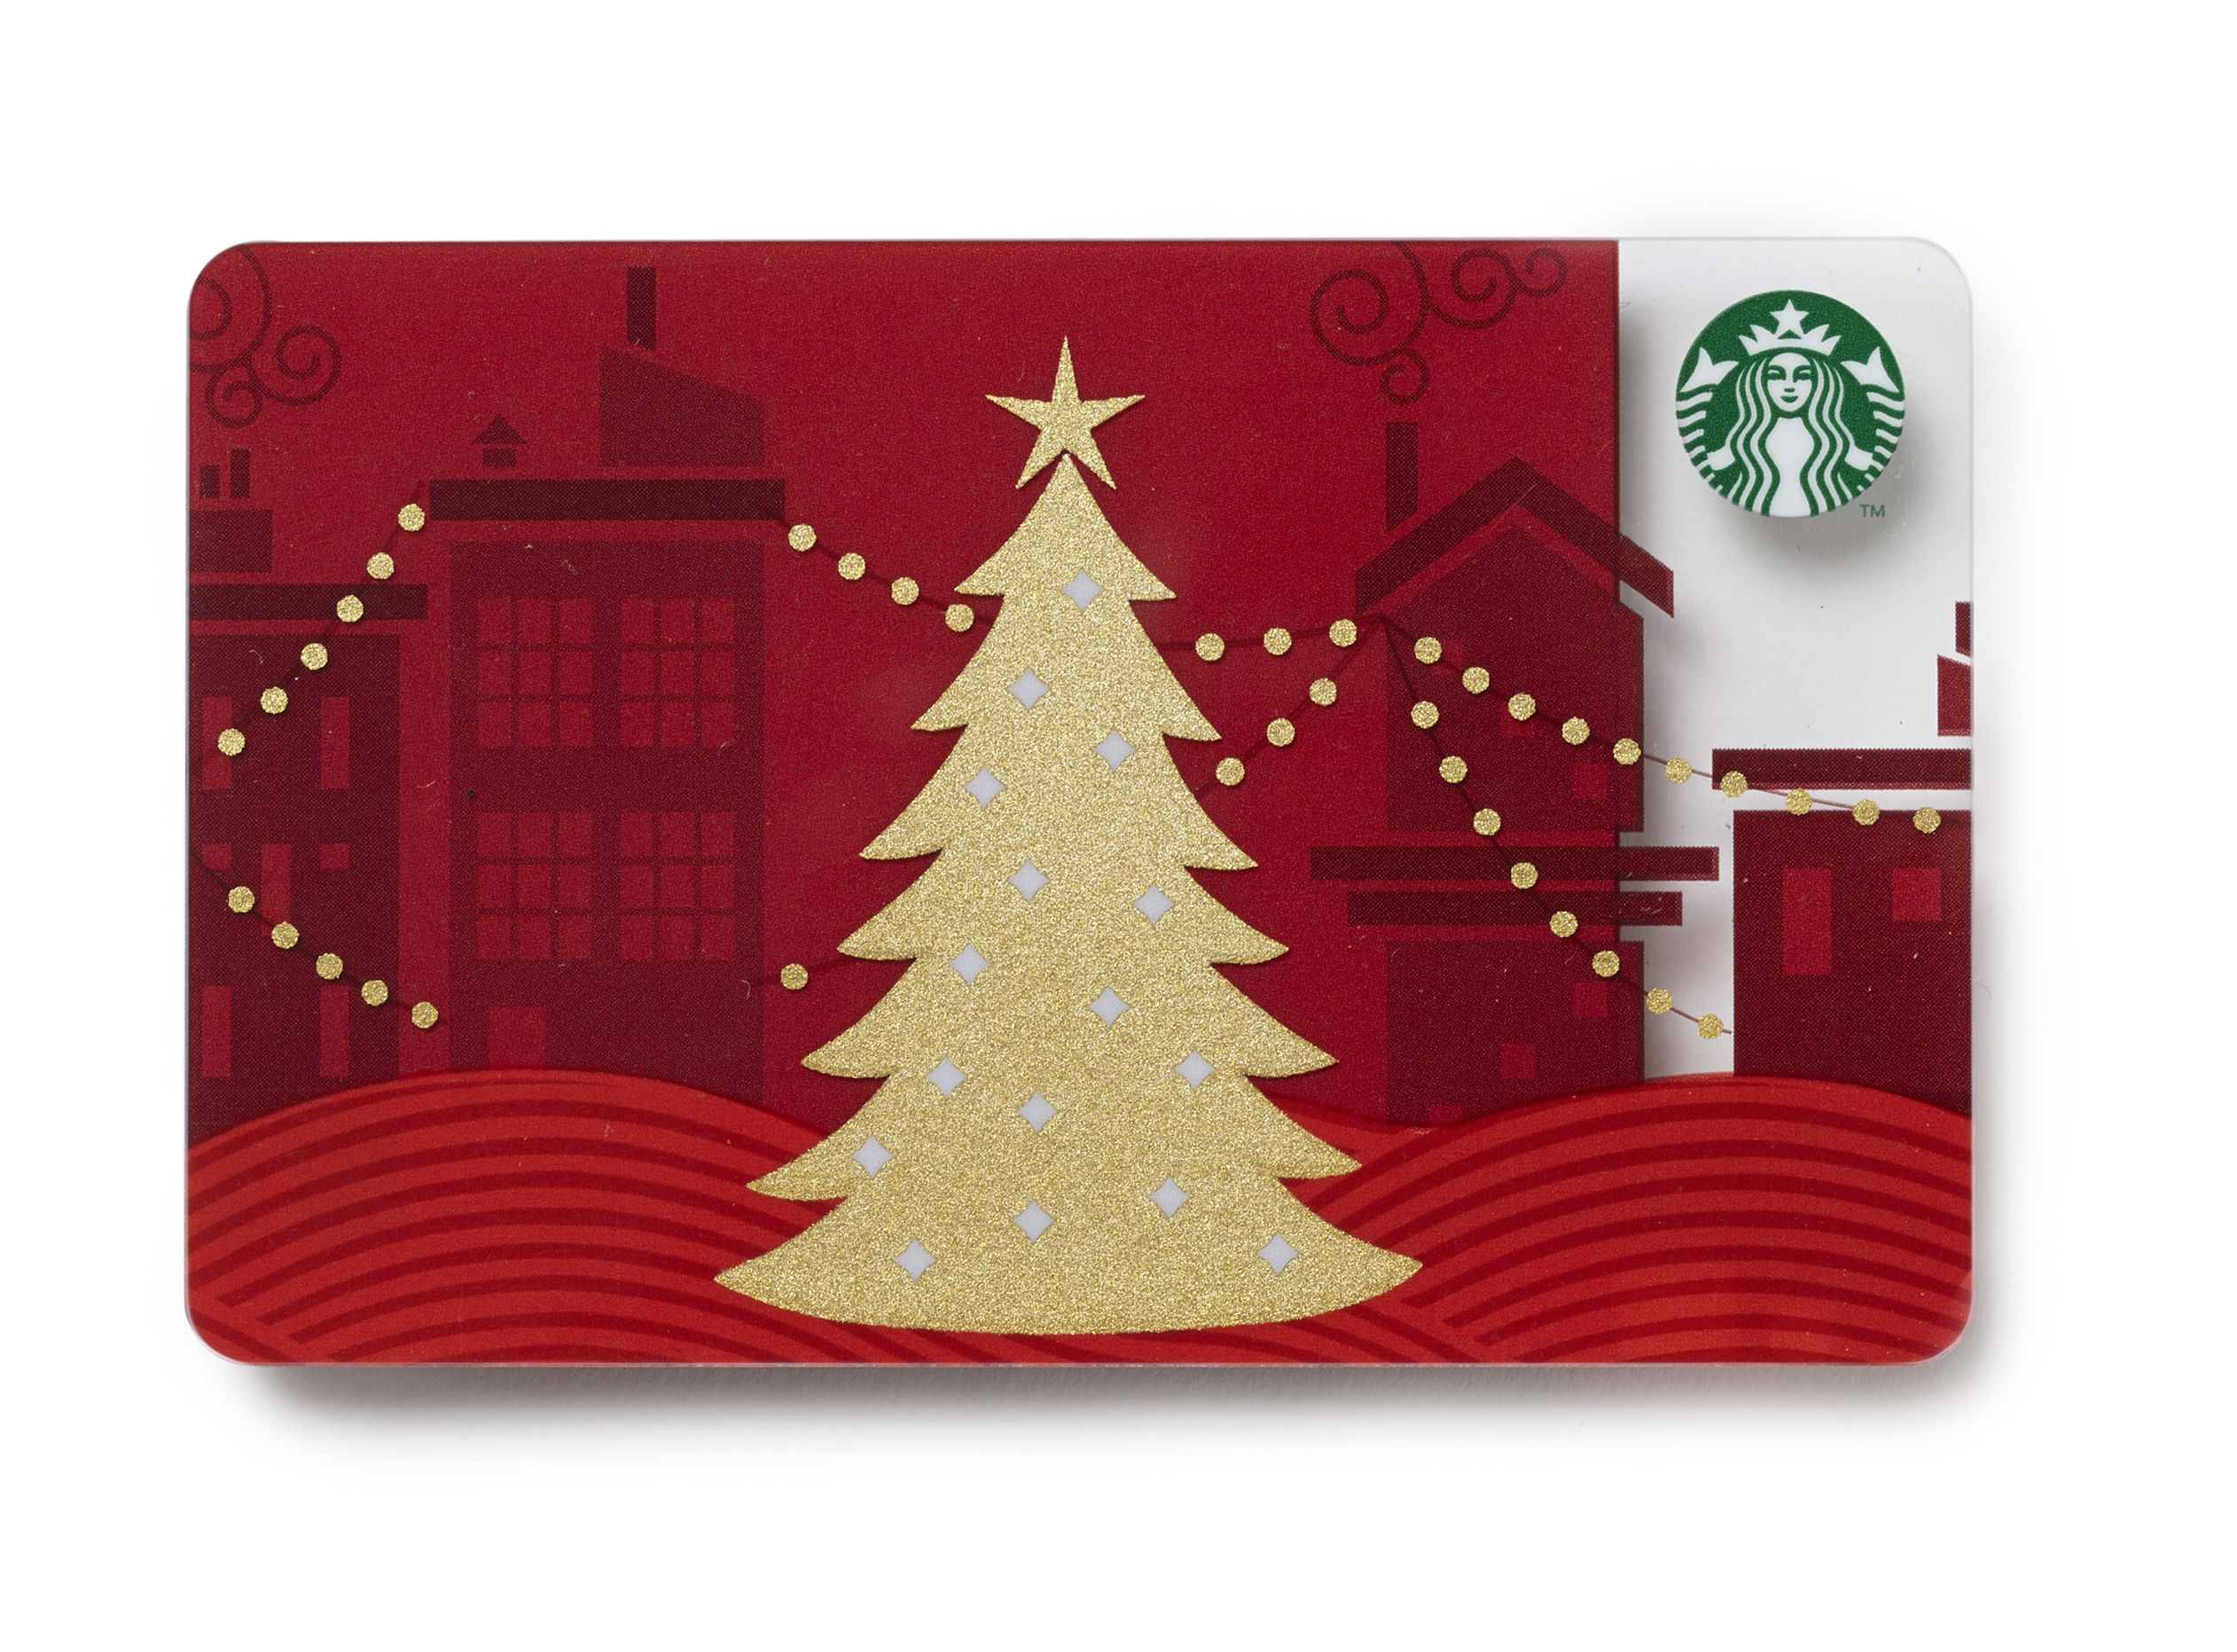 Starbucks Anticipates Busiest Day of the Year for Starbucks Card ...